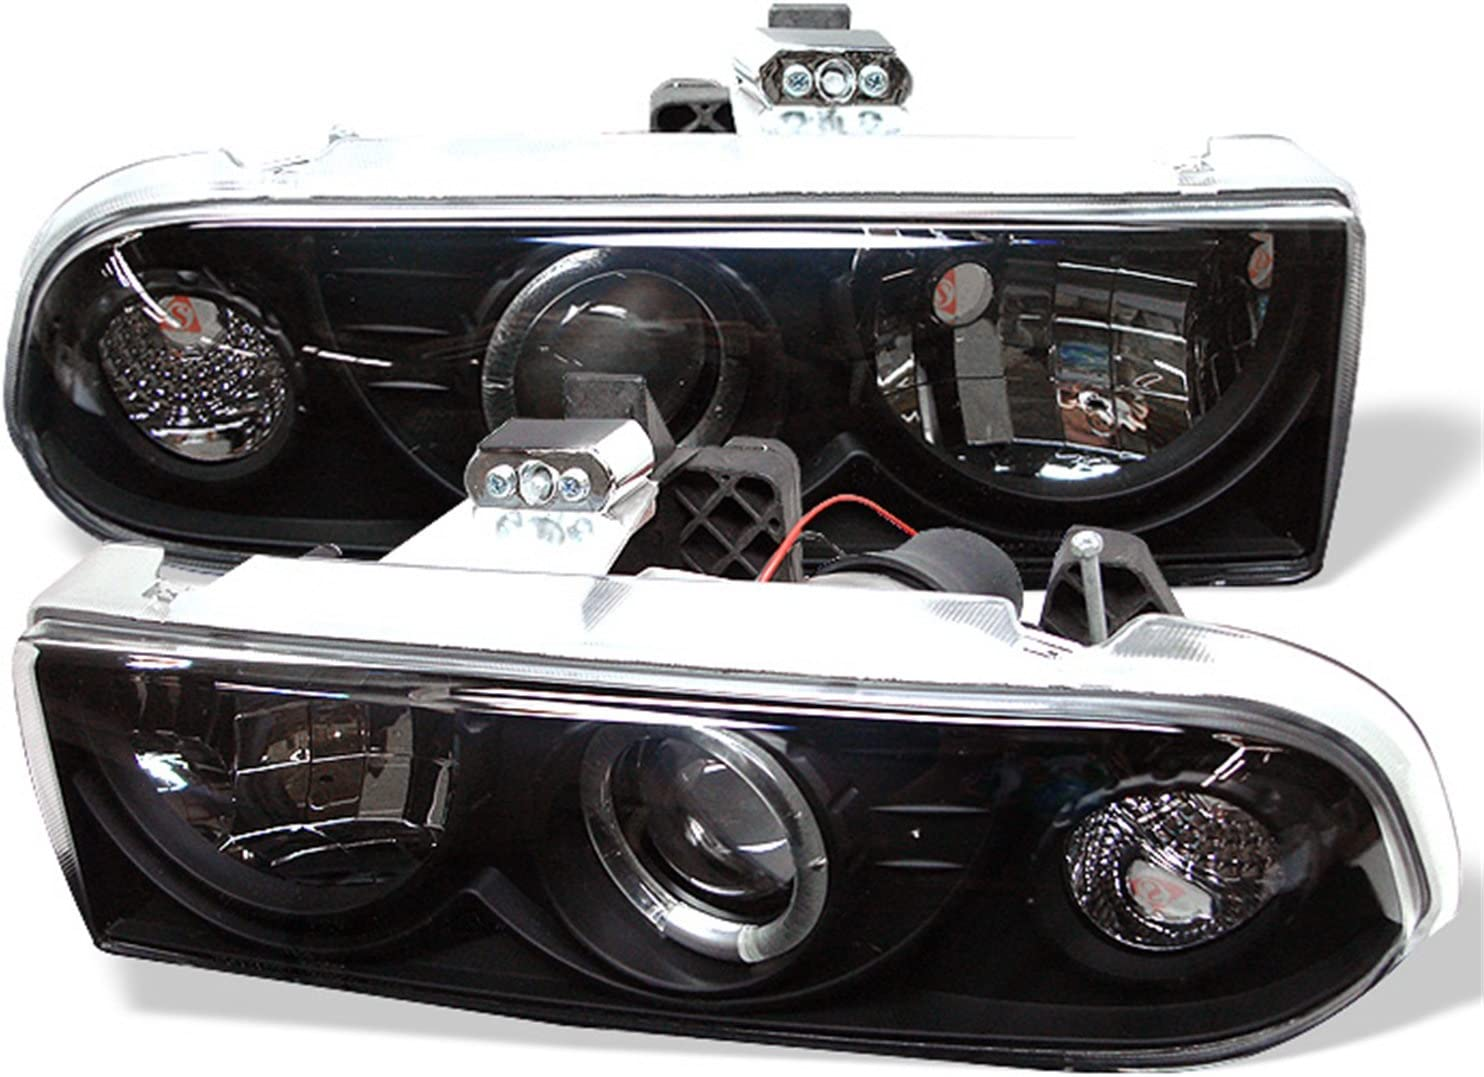 amazon com spyder 5009524 chevy s10 98 04 chevy blazer 98 05 projector headlights led halo black high 9005 not included low h1 included automotive spyder 5009524 chevy s10 98 04 chevy blazer 98 05 projector headlights led halo black high 9005 not included low h1 included